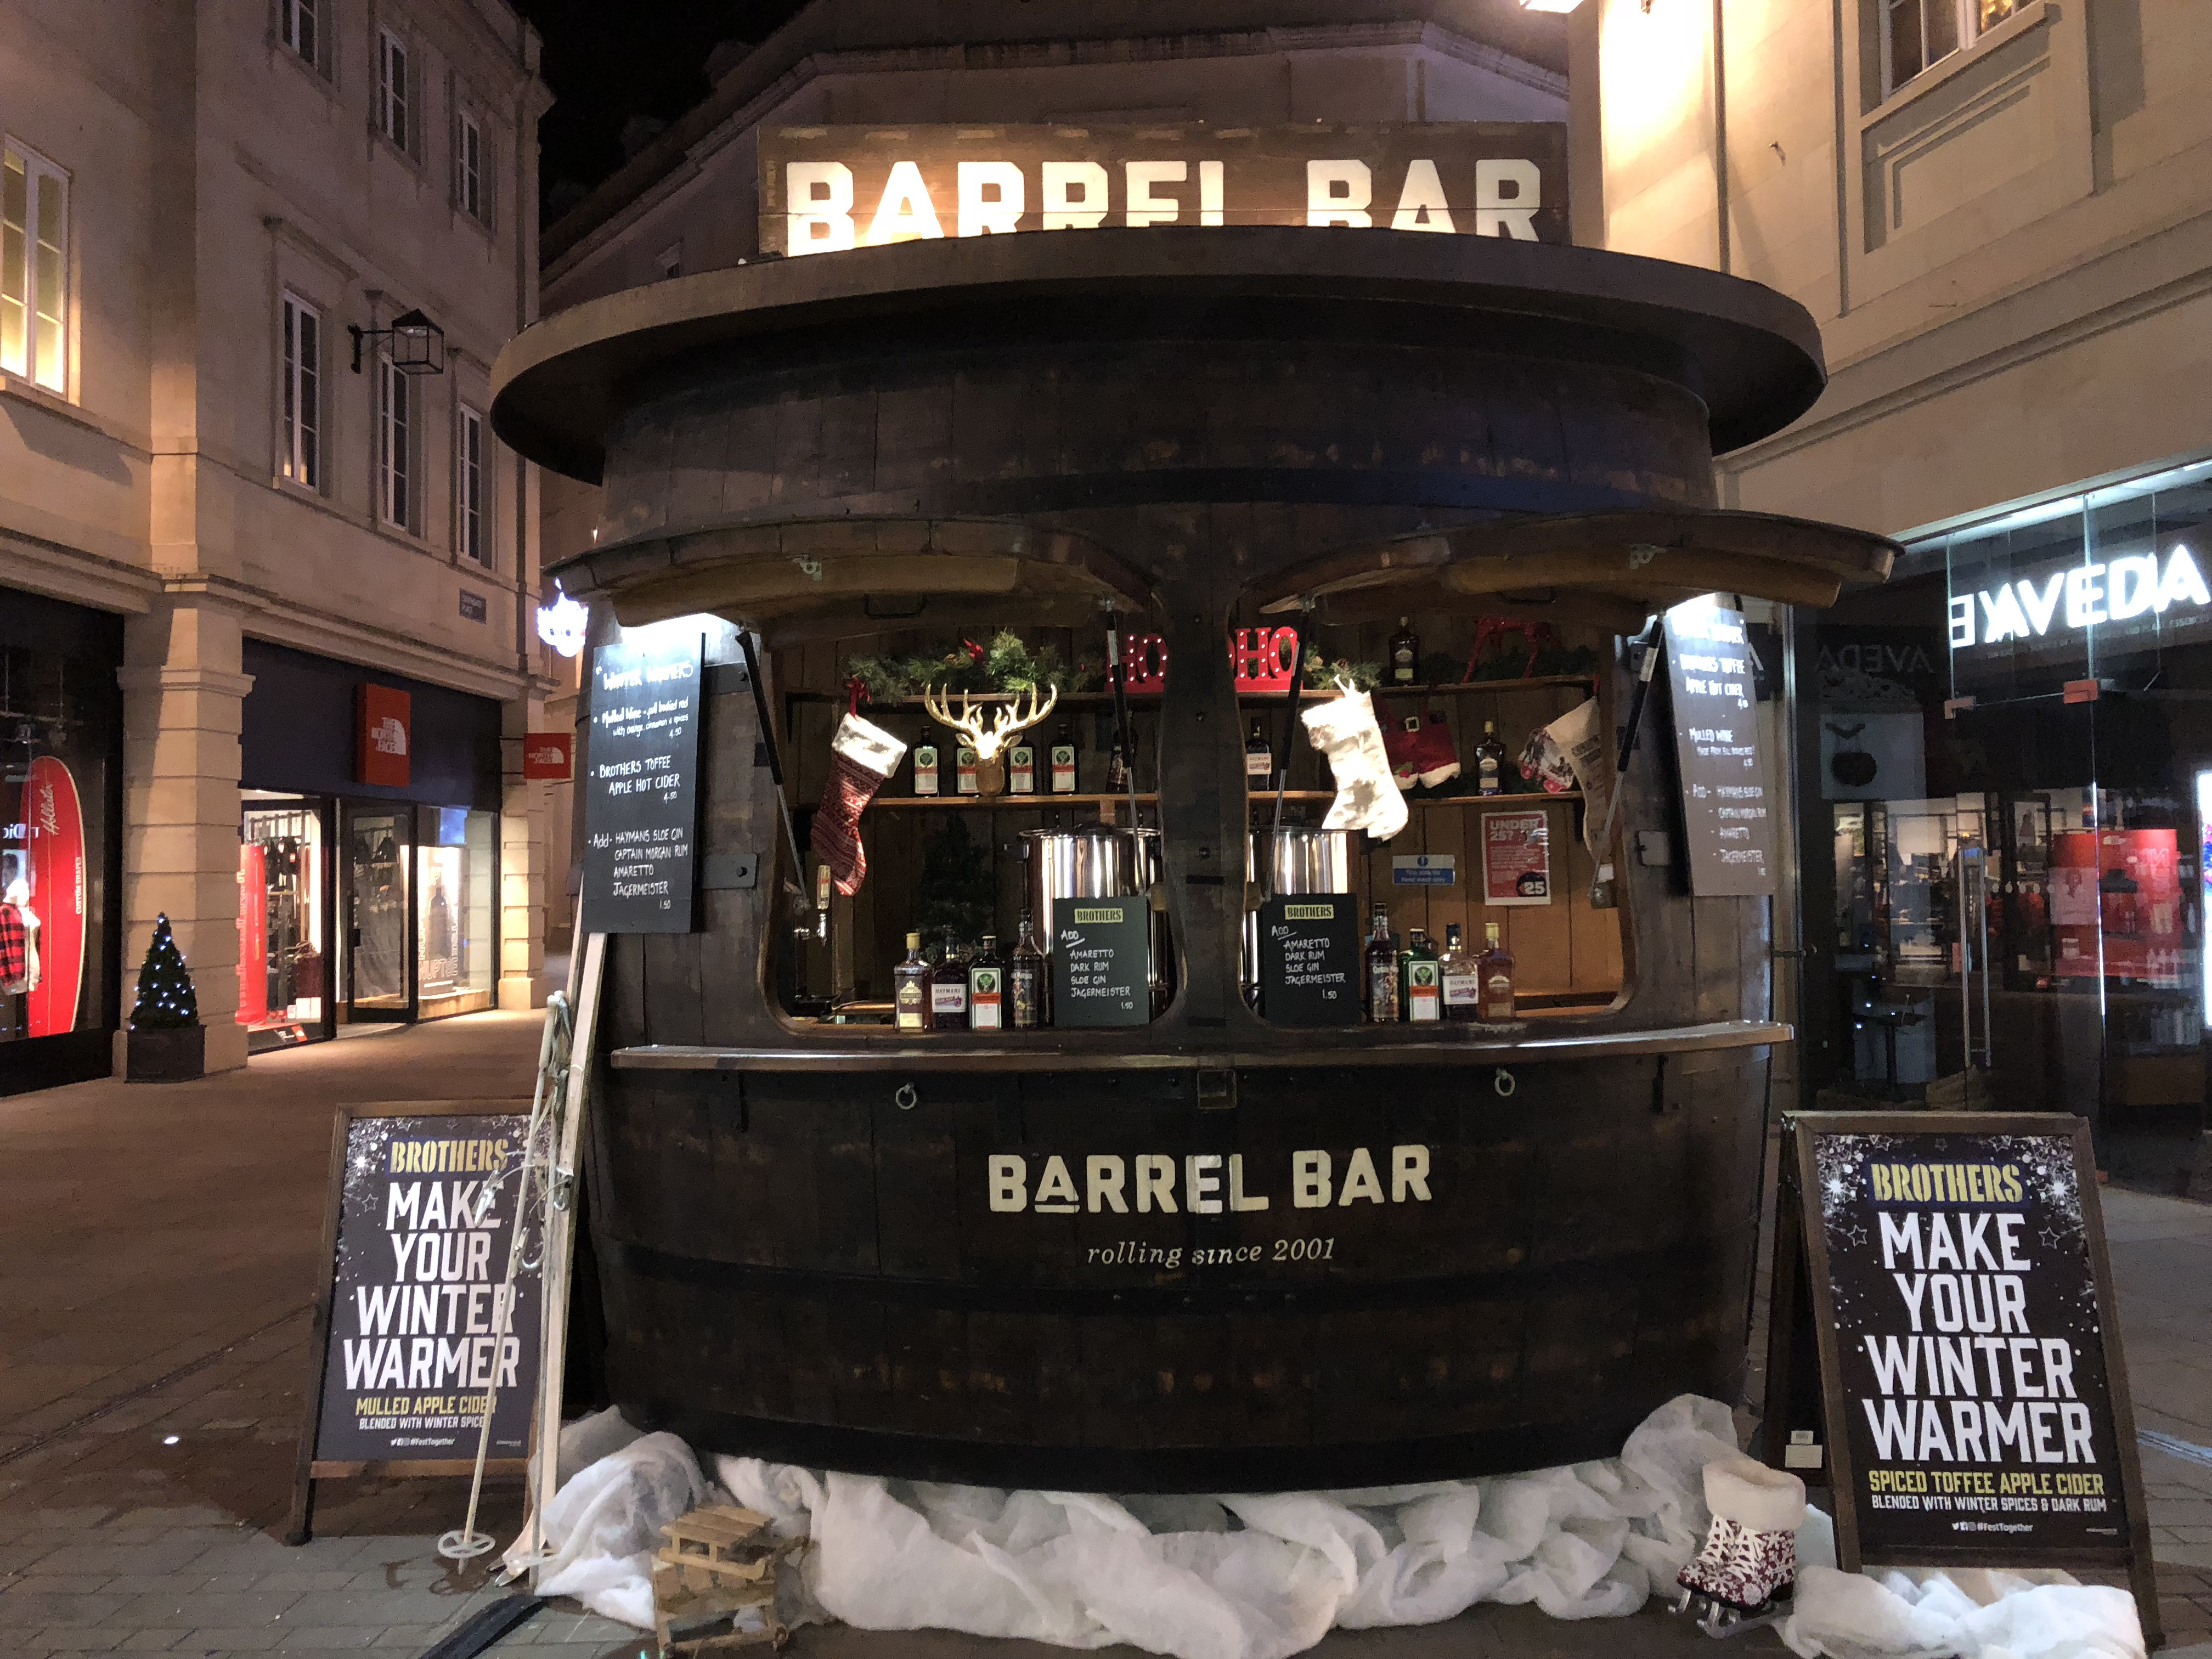 Christmas Barrel Bar Bath